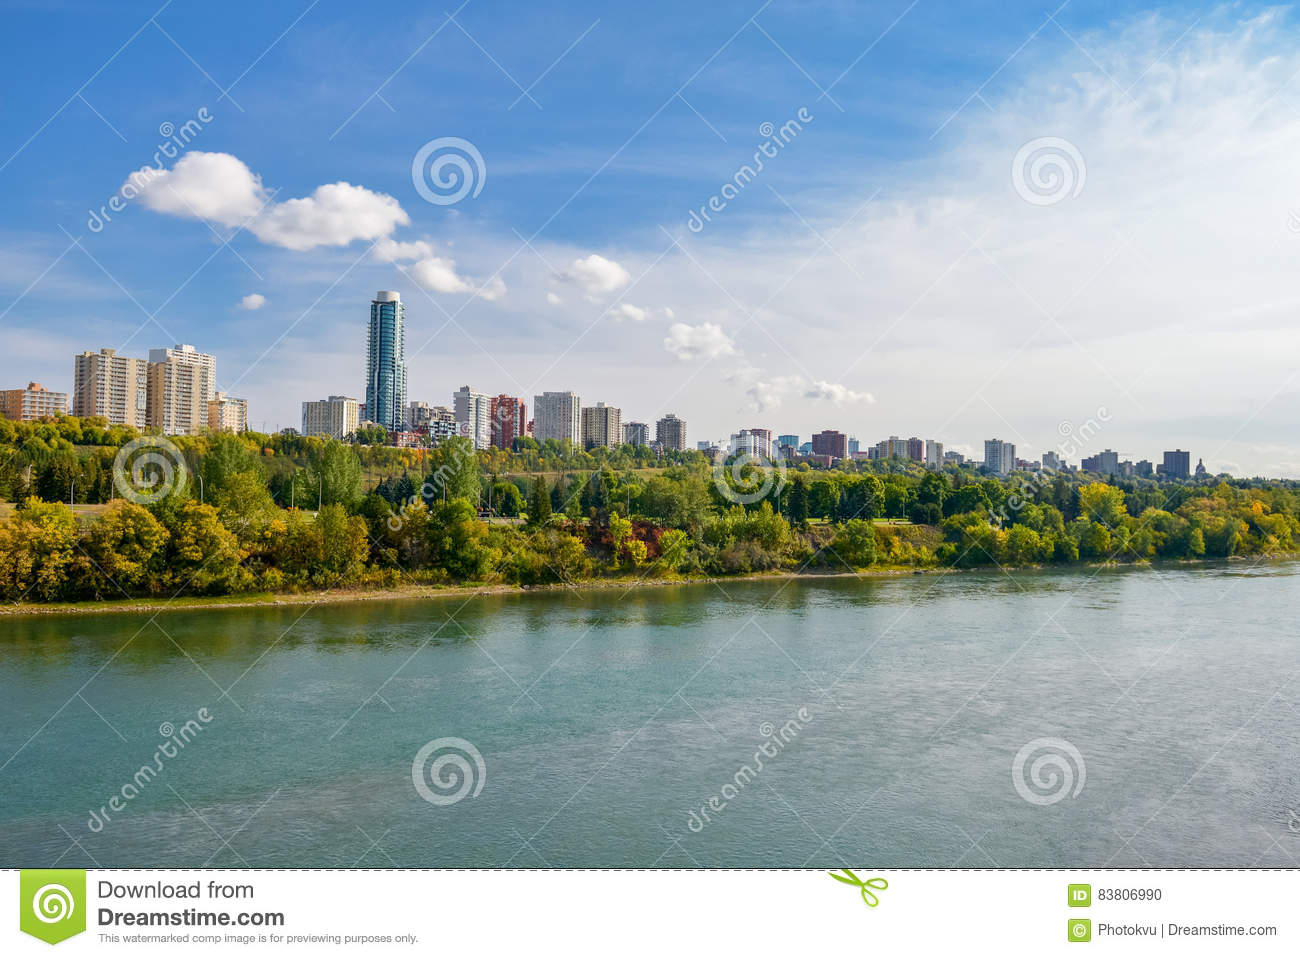 Edmonton from the River